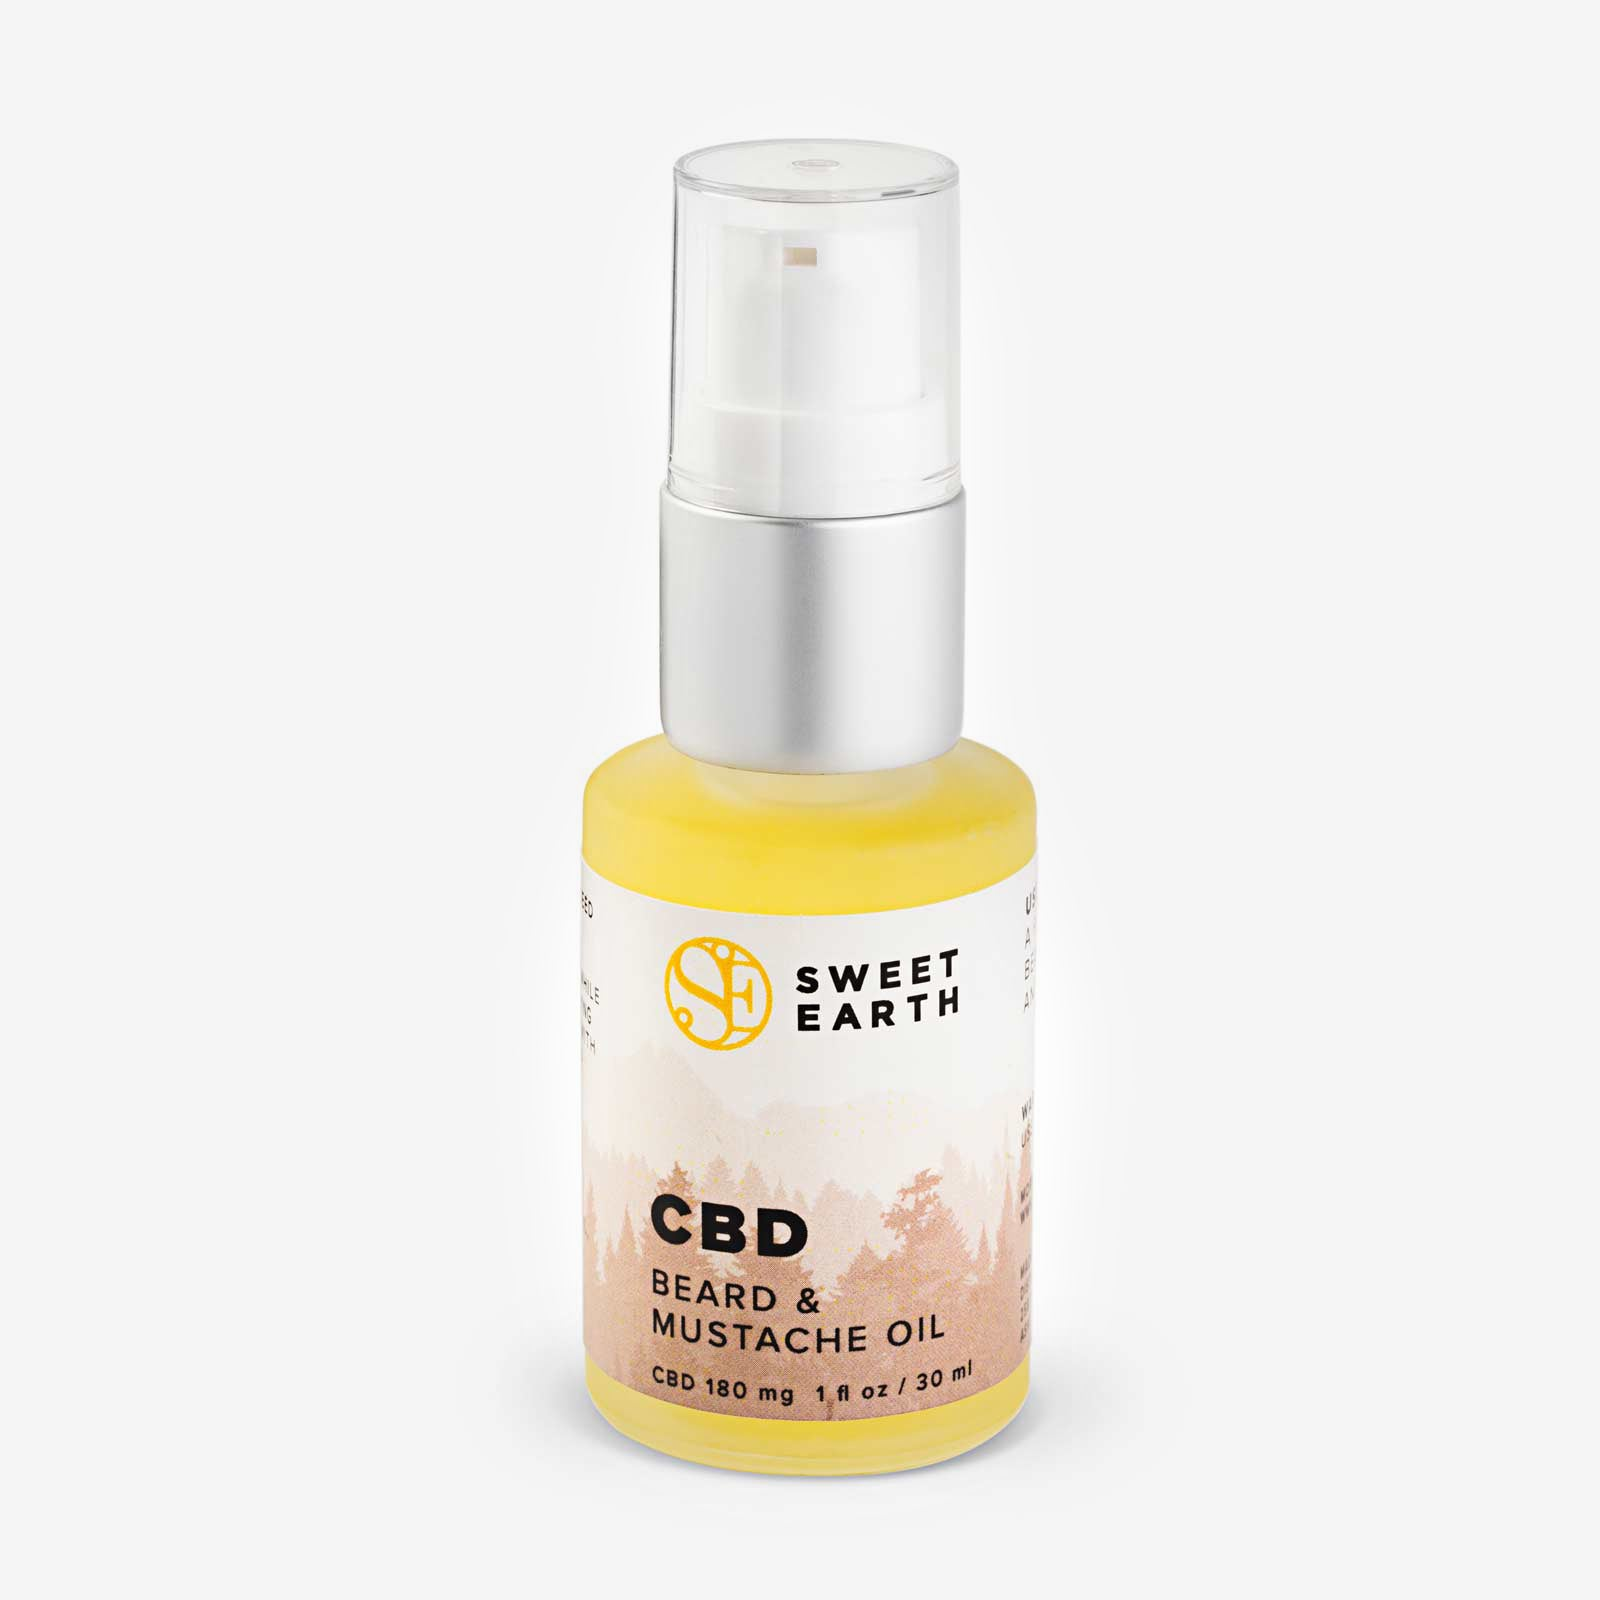 CBD Beard & Mustache Oil